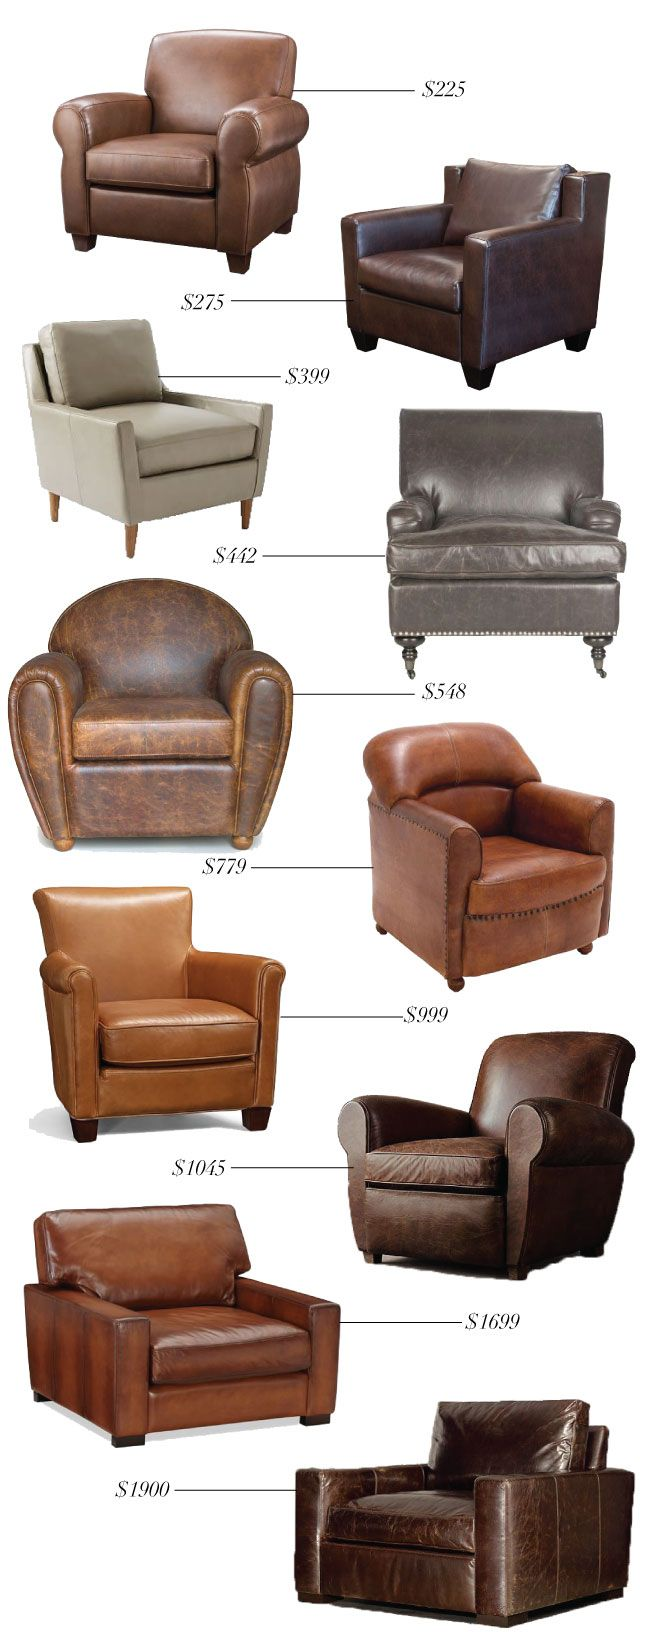 Leather Chairs for Every Budget + A new one in the Living Room!